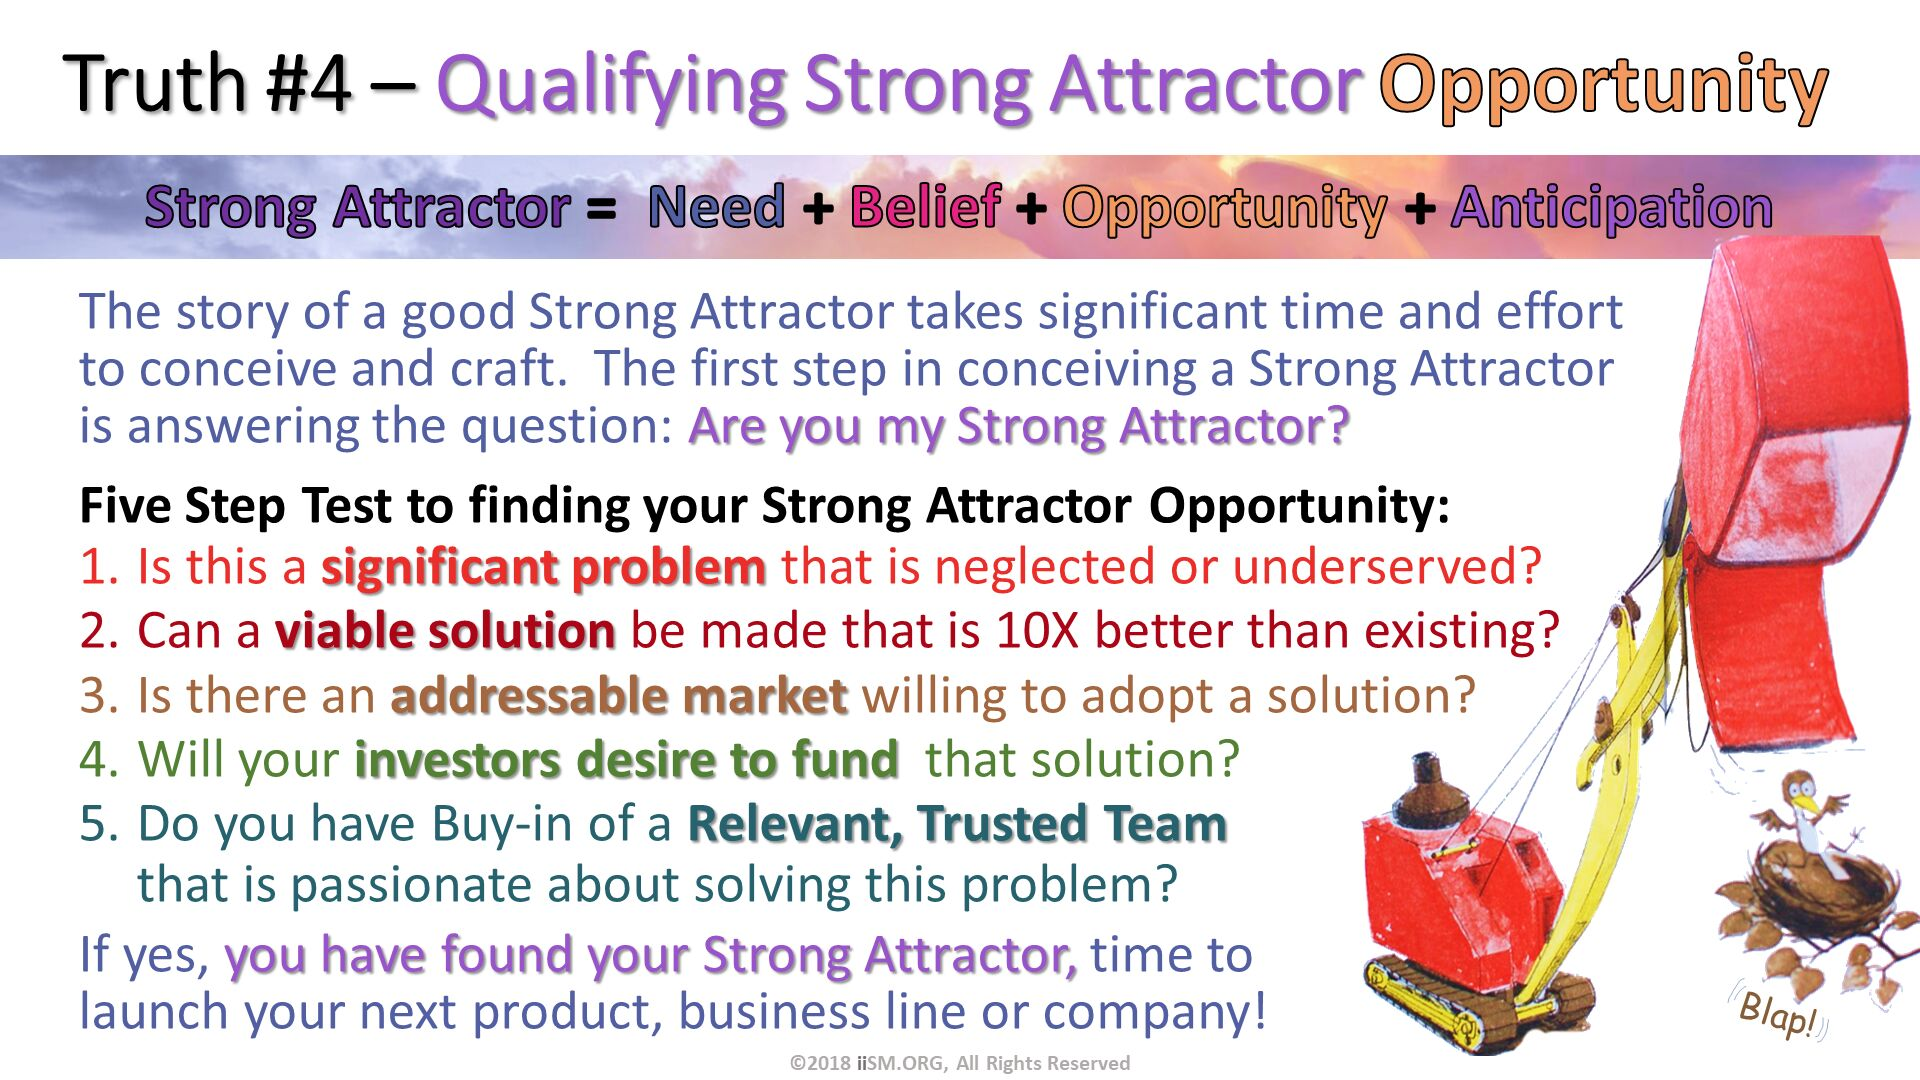 Truth #4 – Qualifying Strong Attractor Opportunity. The story of a good Strong Attractor takes significant time and effort to conceive and craft.  The first step in conceiving a Strong Attractor is answering the question: Are you my Strong Attractor?  Five Step Test to finding your Strong Attractor Opportunity:  Is this a significant problem that is neglected or underserved? Can a viable solution be made that is 10X better than existing? Is there an addressable market willing to adopt a solution? Will your investors desire to fund  that solution? Do you have Buy-in of a Relevant, Trusted Team that is passionate about solving this problem?  If yes, you have found your Strong Attractor, time to launch your next product, business line or company!   . Blap!. ©2018 iiSM.ORG, All Rights Reserved.